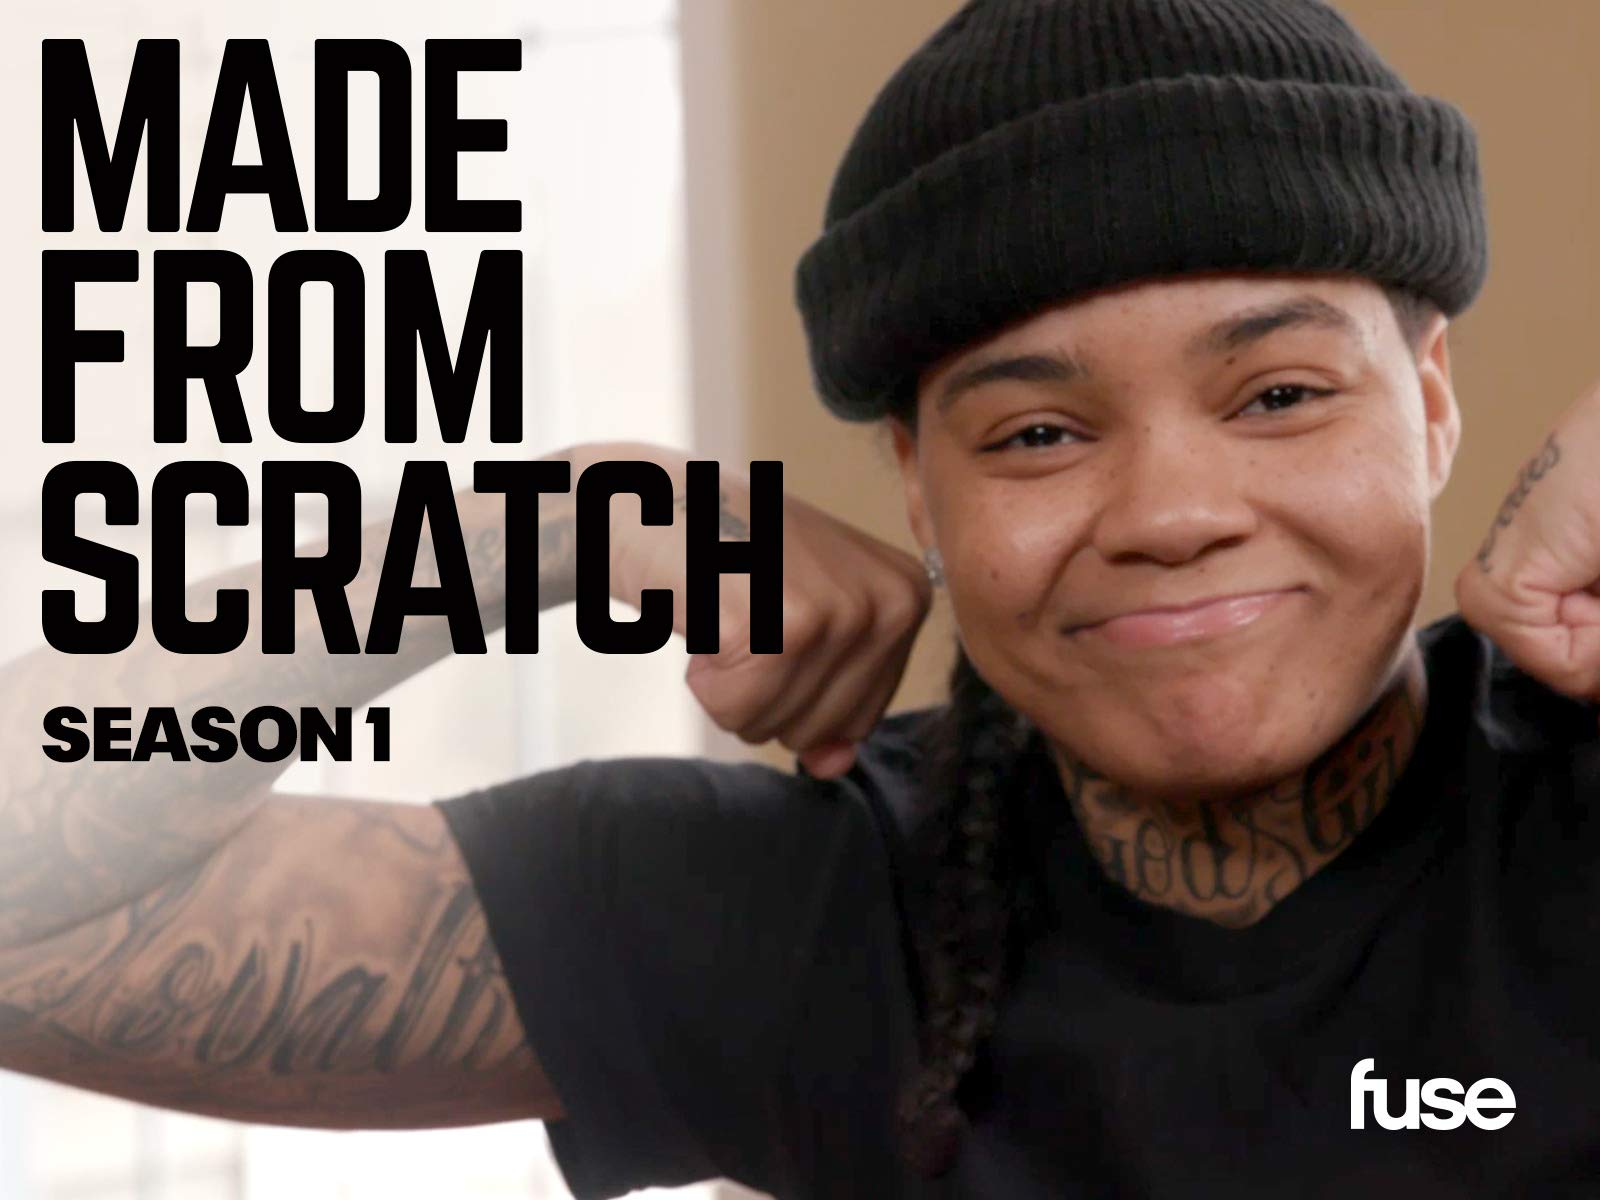 Made From Scratch - Season 1